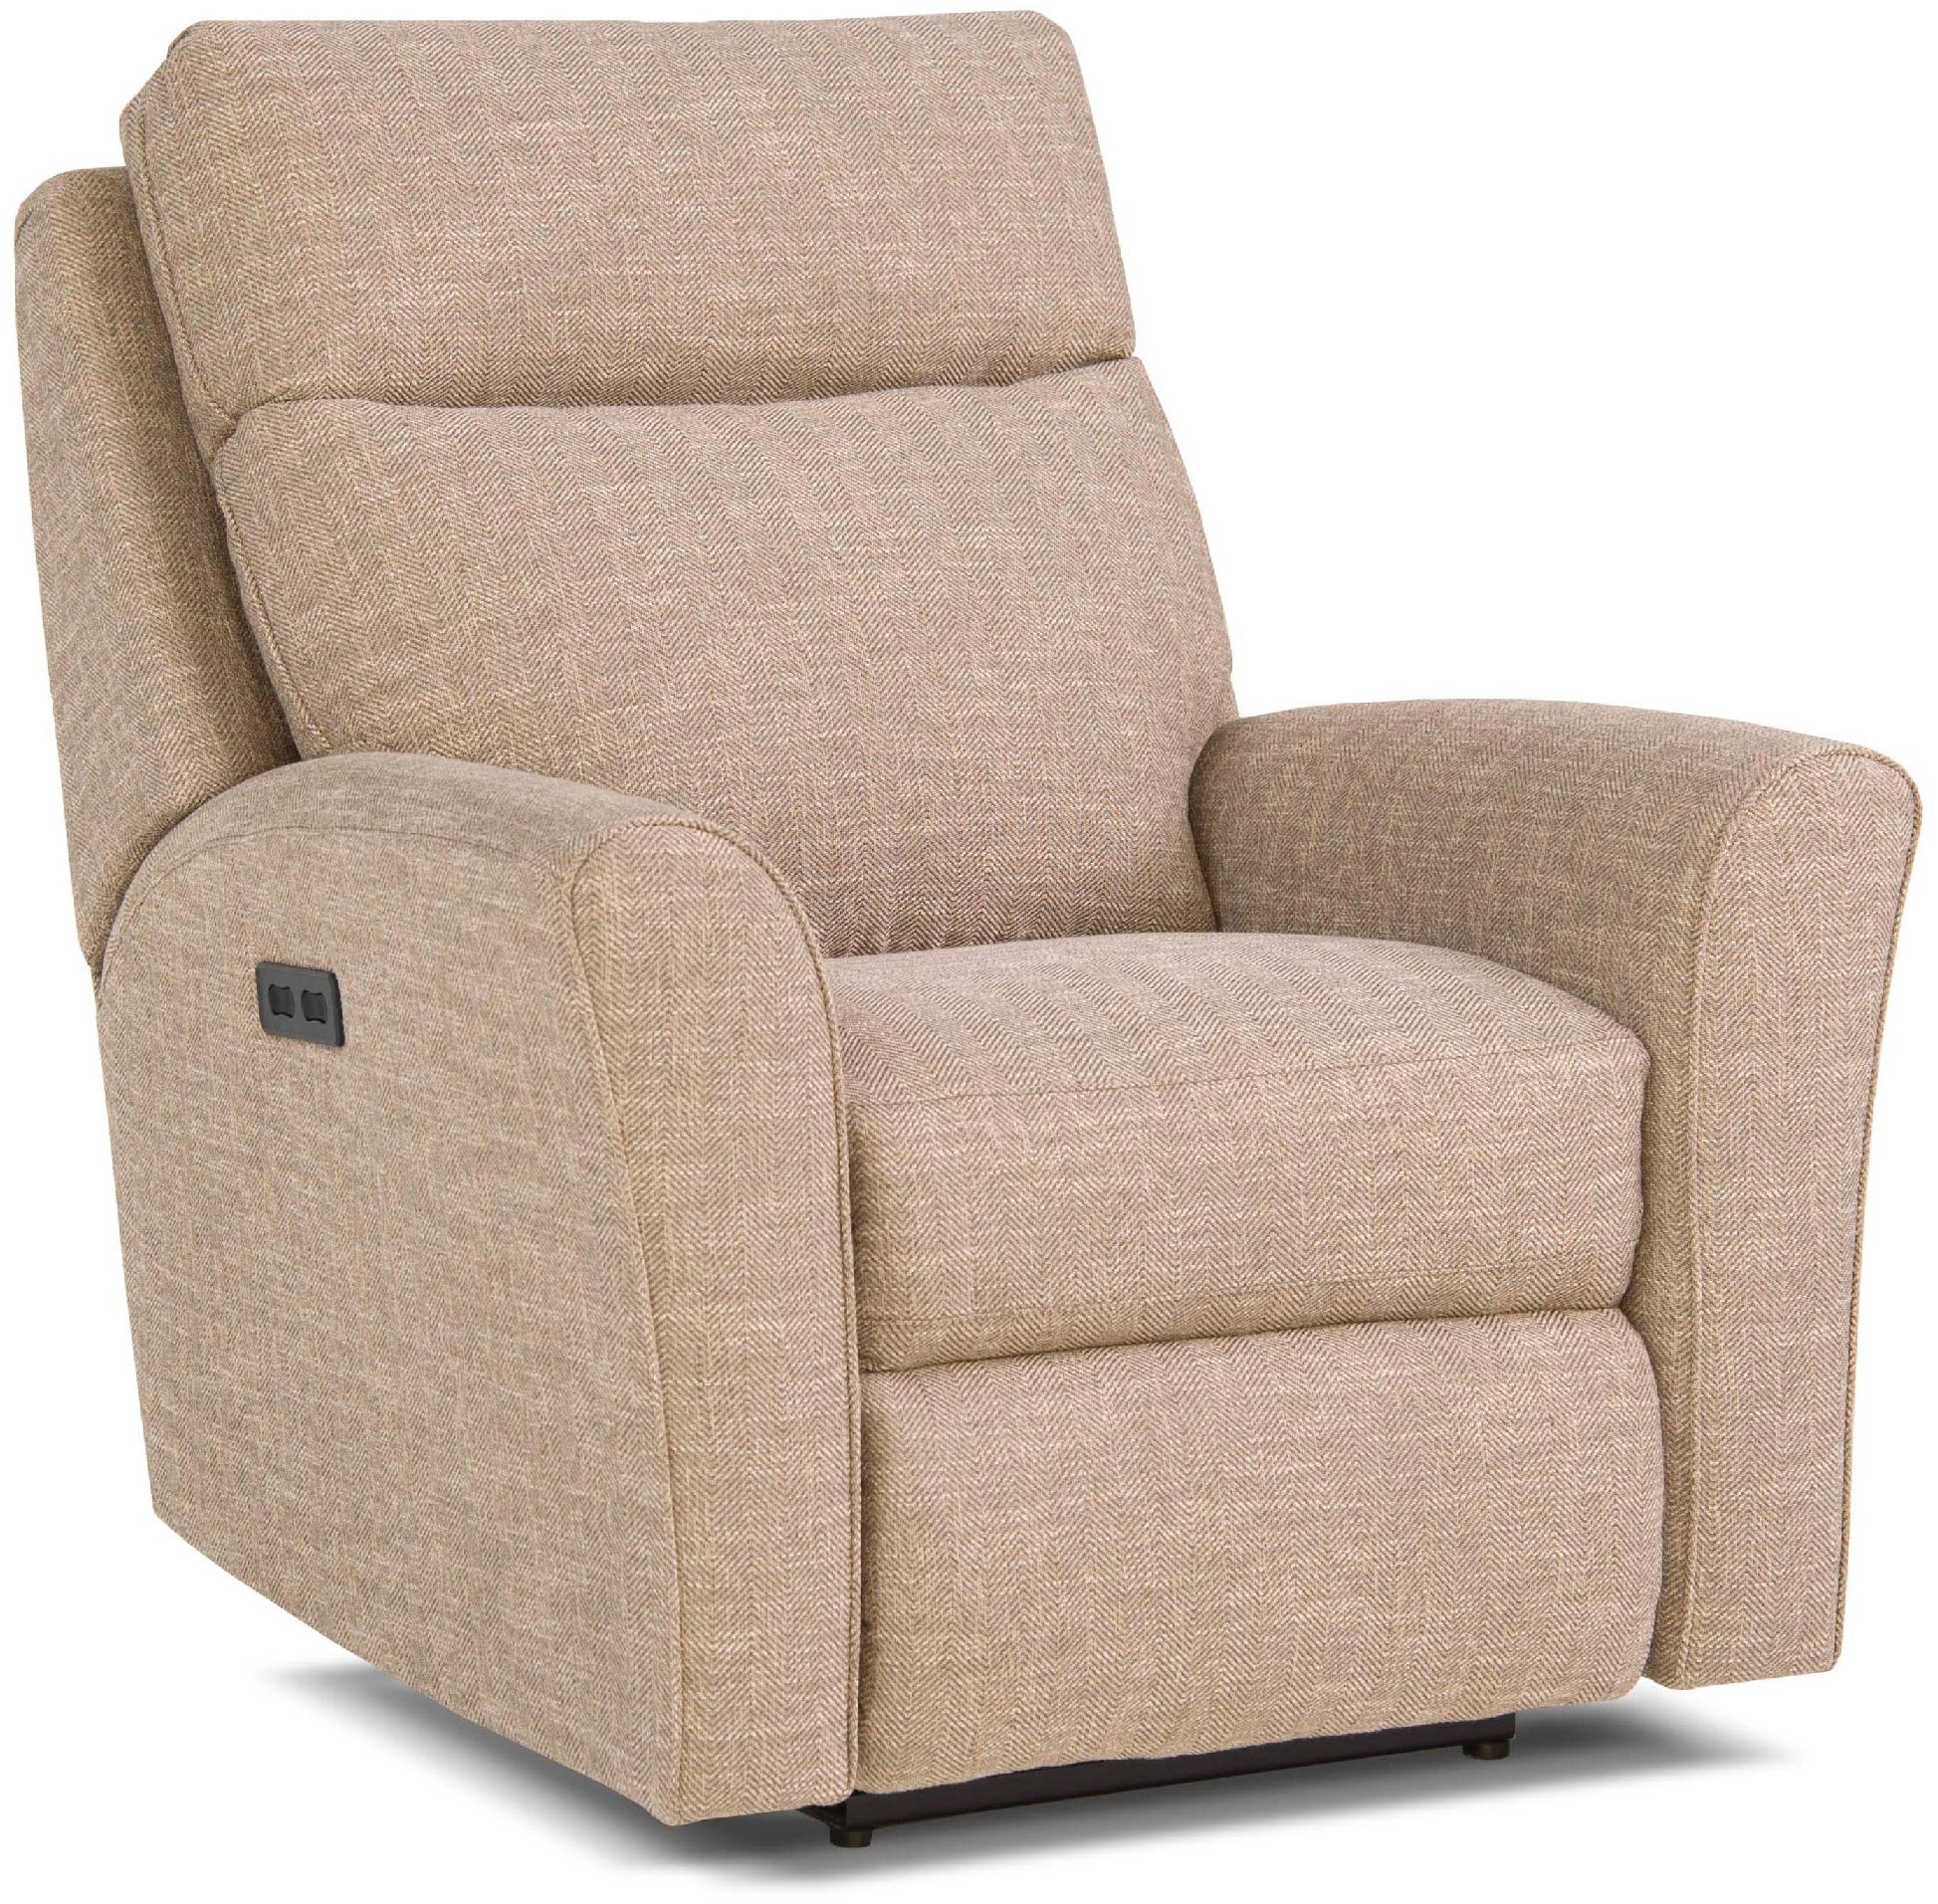 Smith Brothers Living Room 418 Motorized Recliner SB418 83 Penny